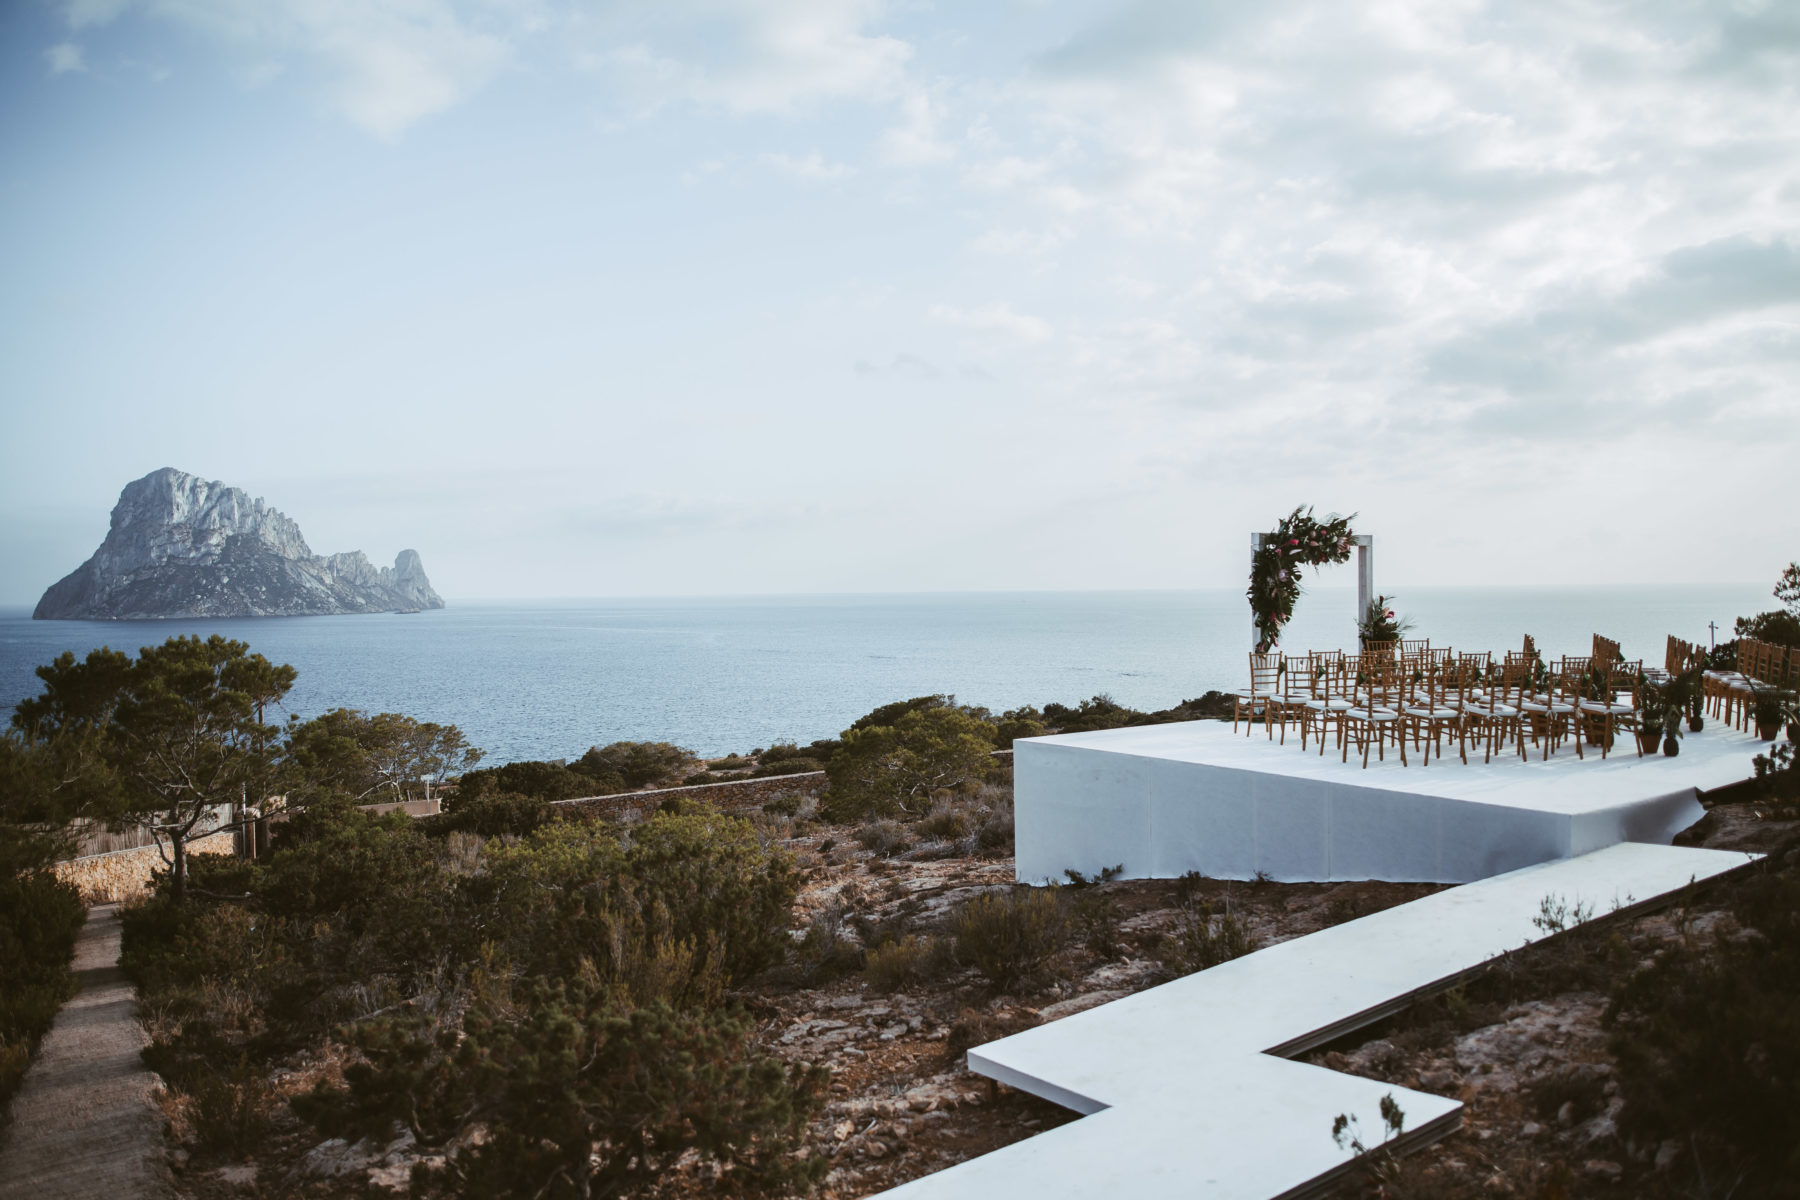 hochzeit-ibiza-la-escollera-ibiza-destination-wedding-mallorca photographer.jpg